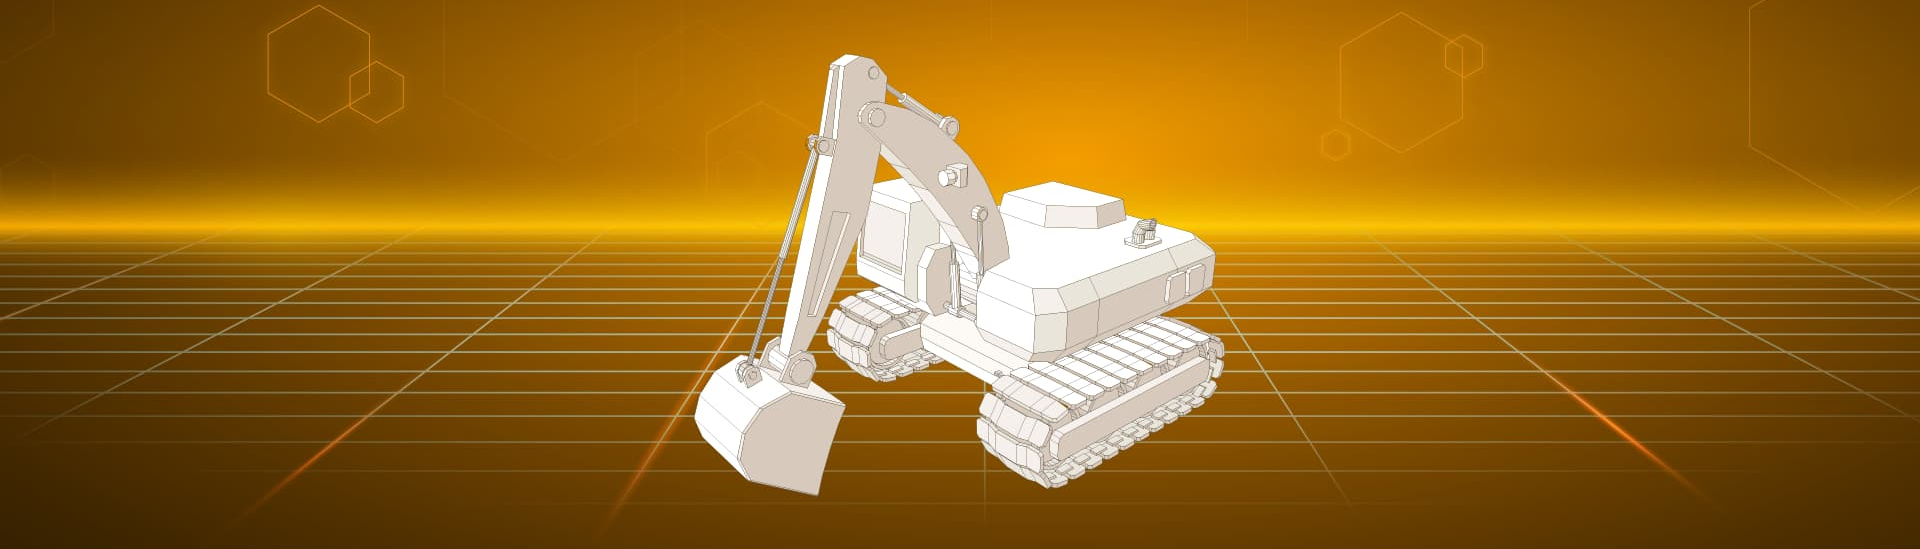 Animation construction machinery by KTR Systems GmbH